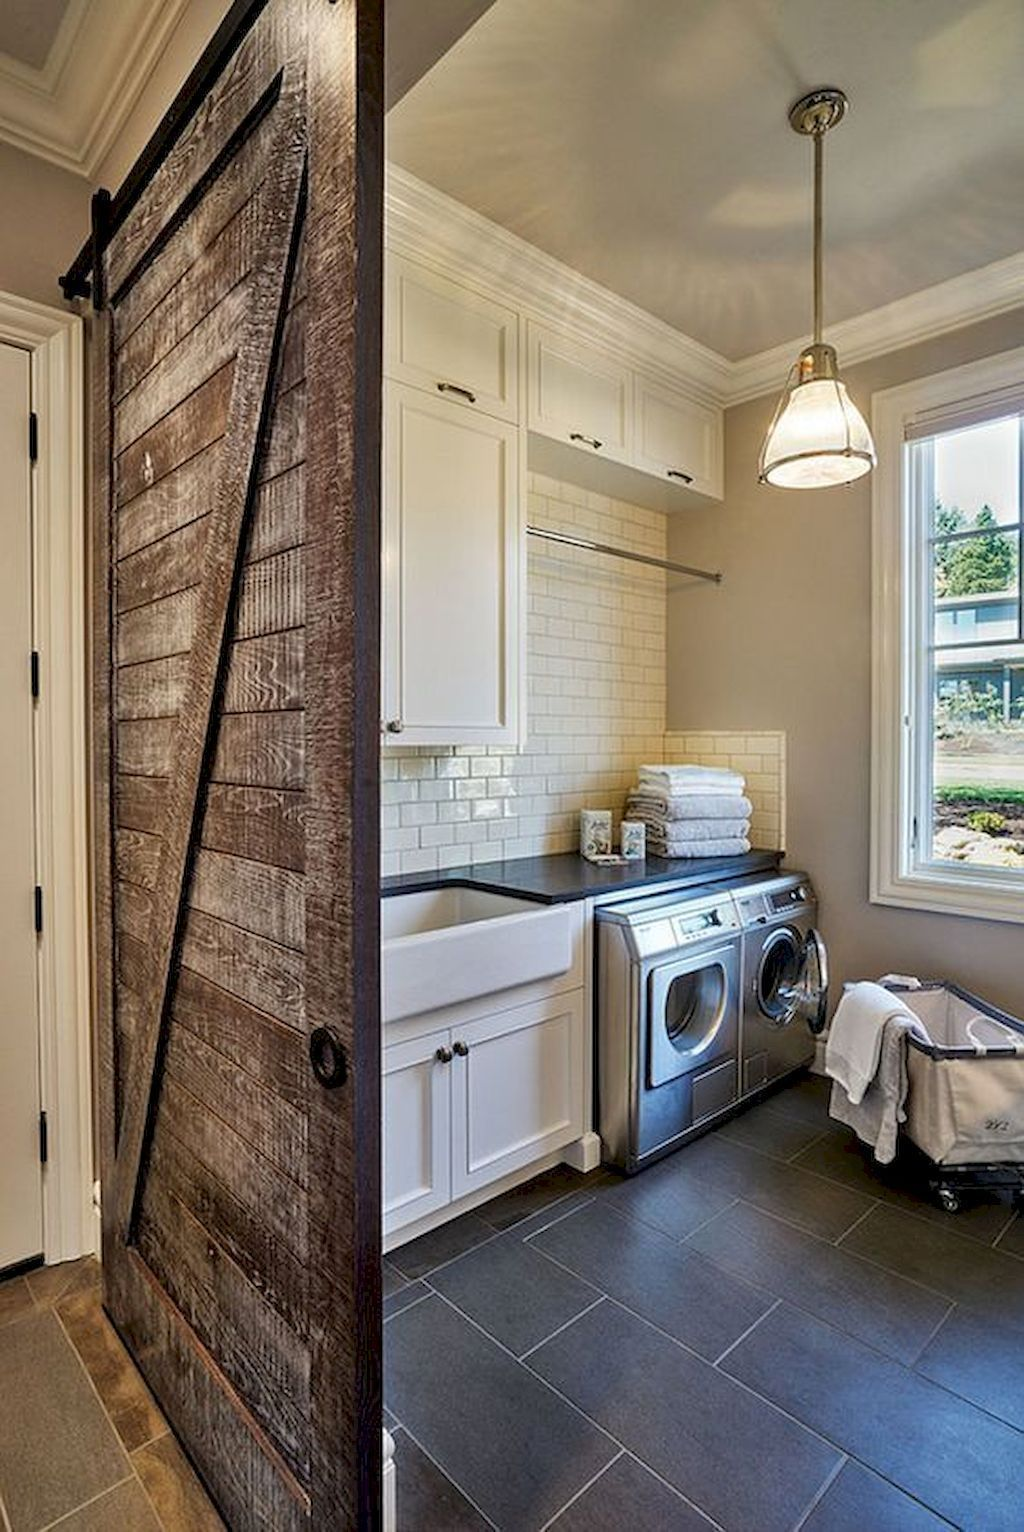 Breathtaking 25 Beautiful And Efficient Laundry Room Designs Https Decorisme Co 2018 05 16 6292 You Don T Nece Rustic Laundry Rooms Home Laundry In Bathroom